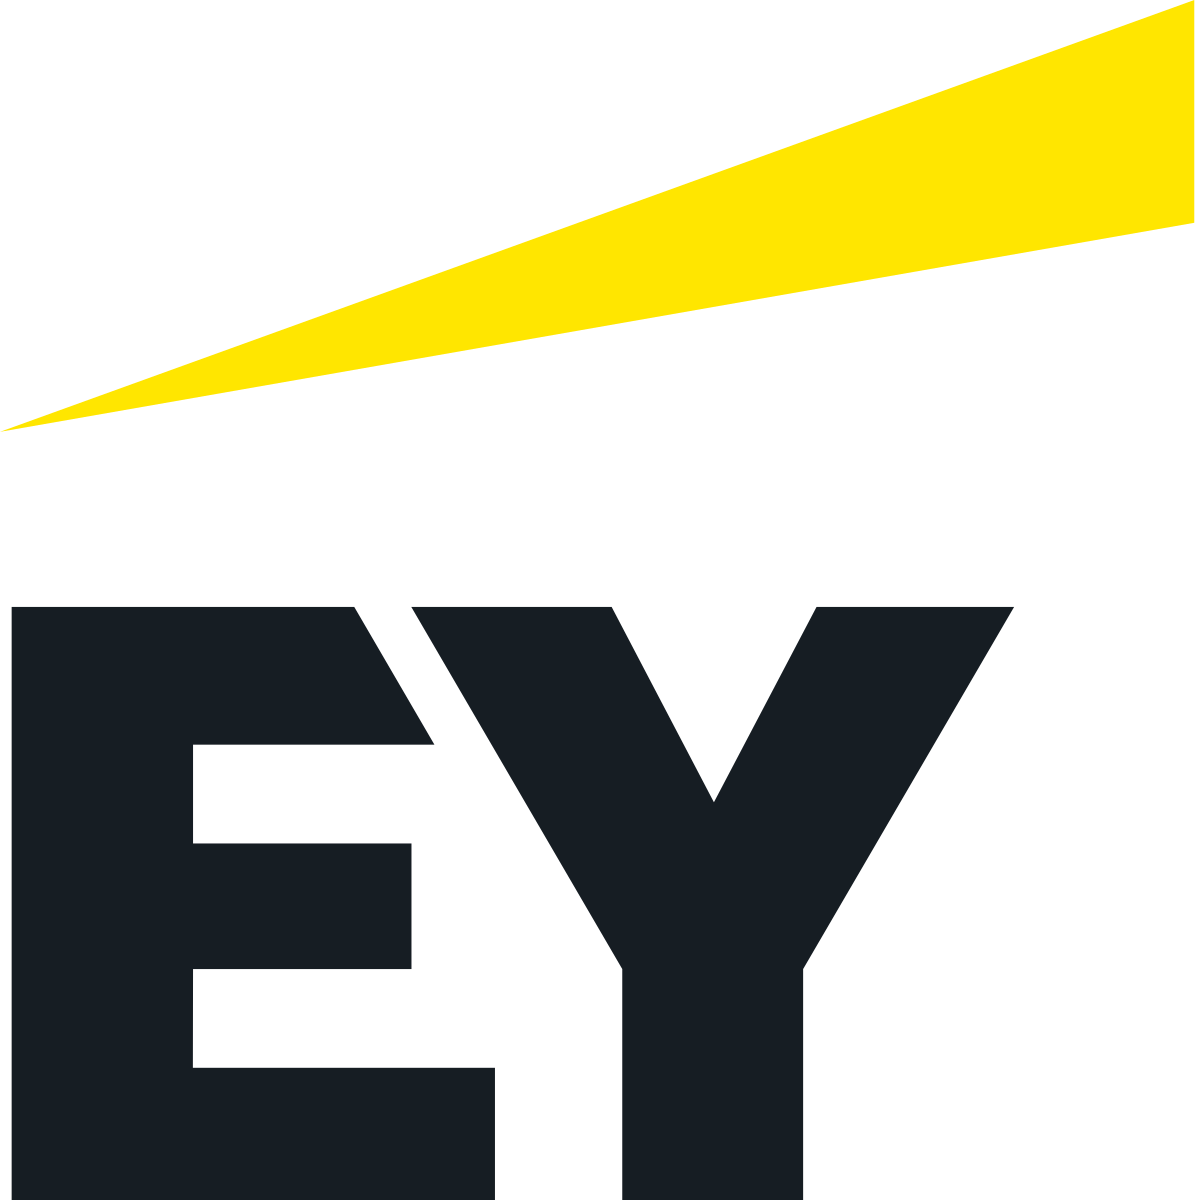 Our sponsors - EY Ernst & Young logo